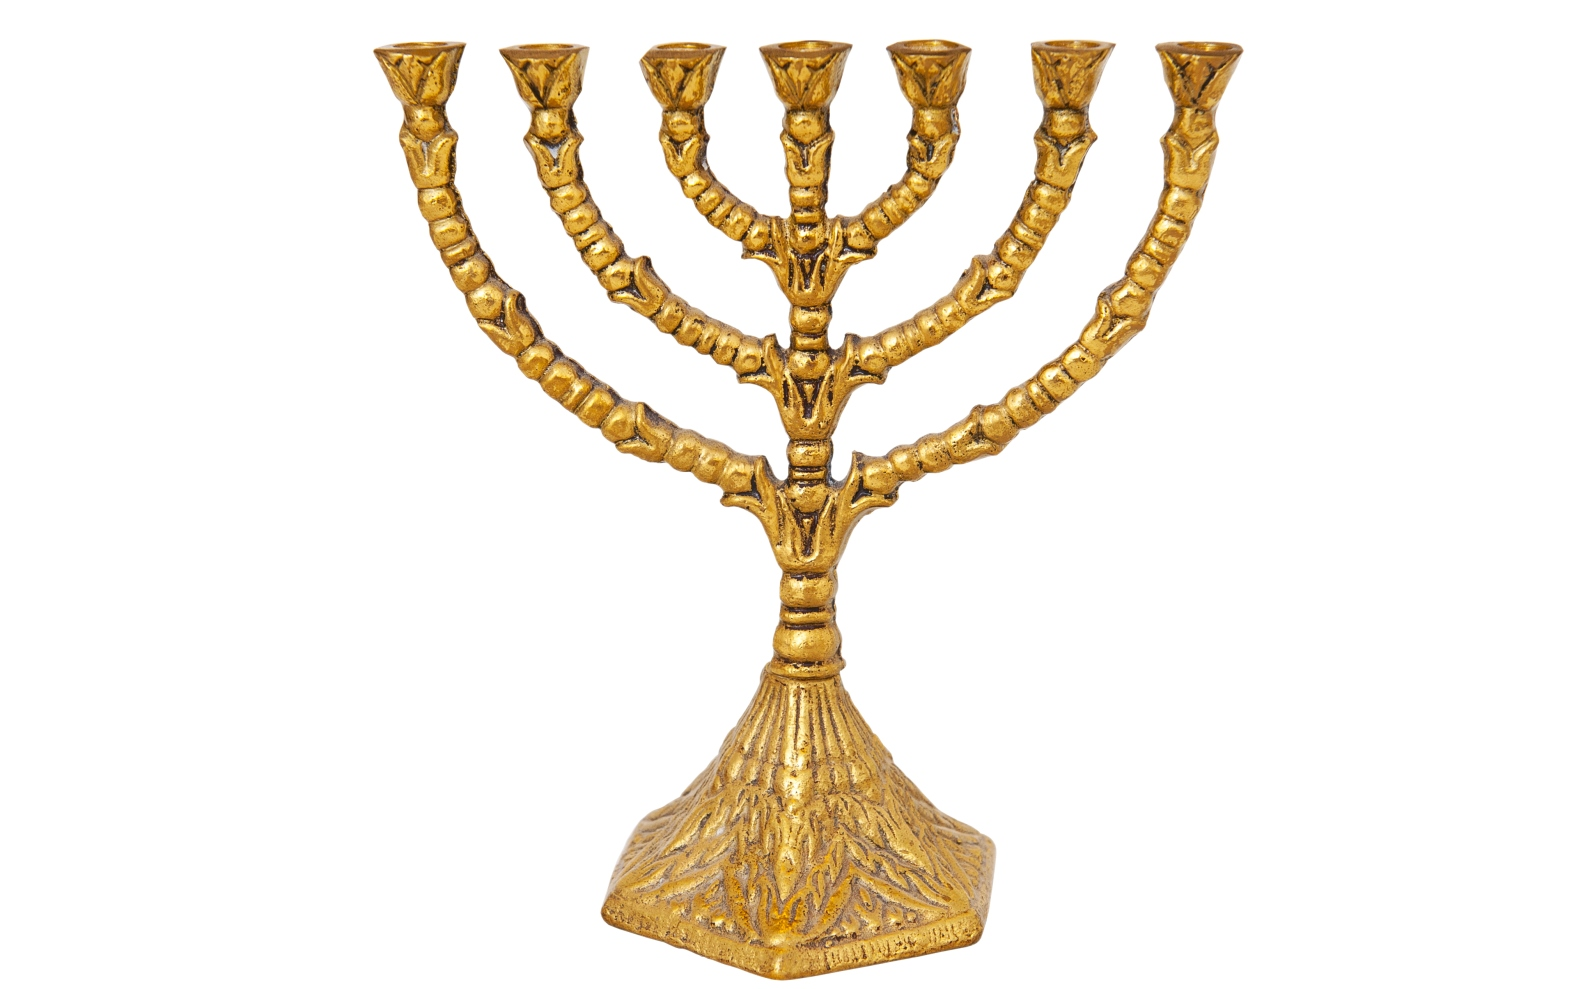 Image of the golden menorah by Evikka/Shutterstock.com